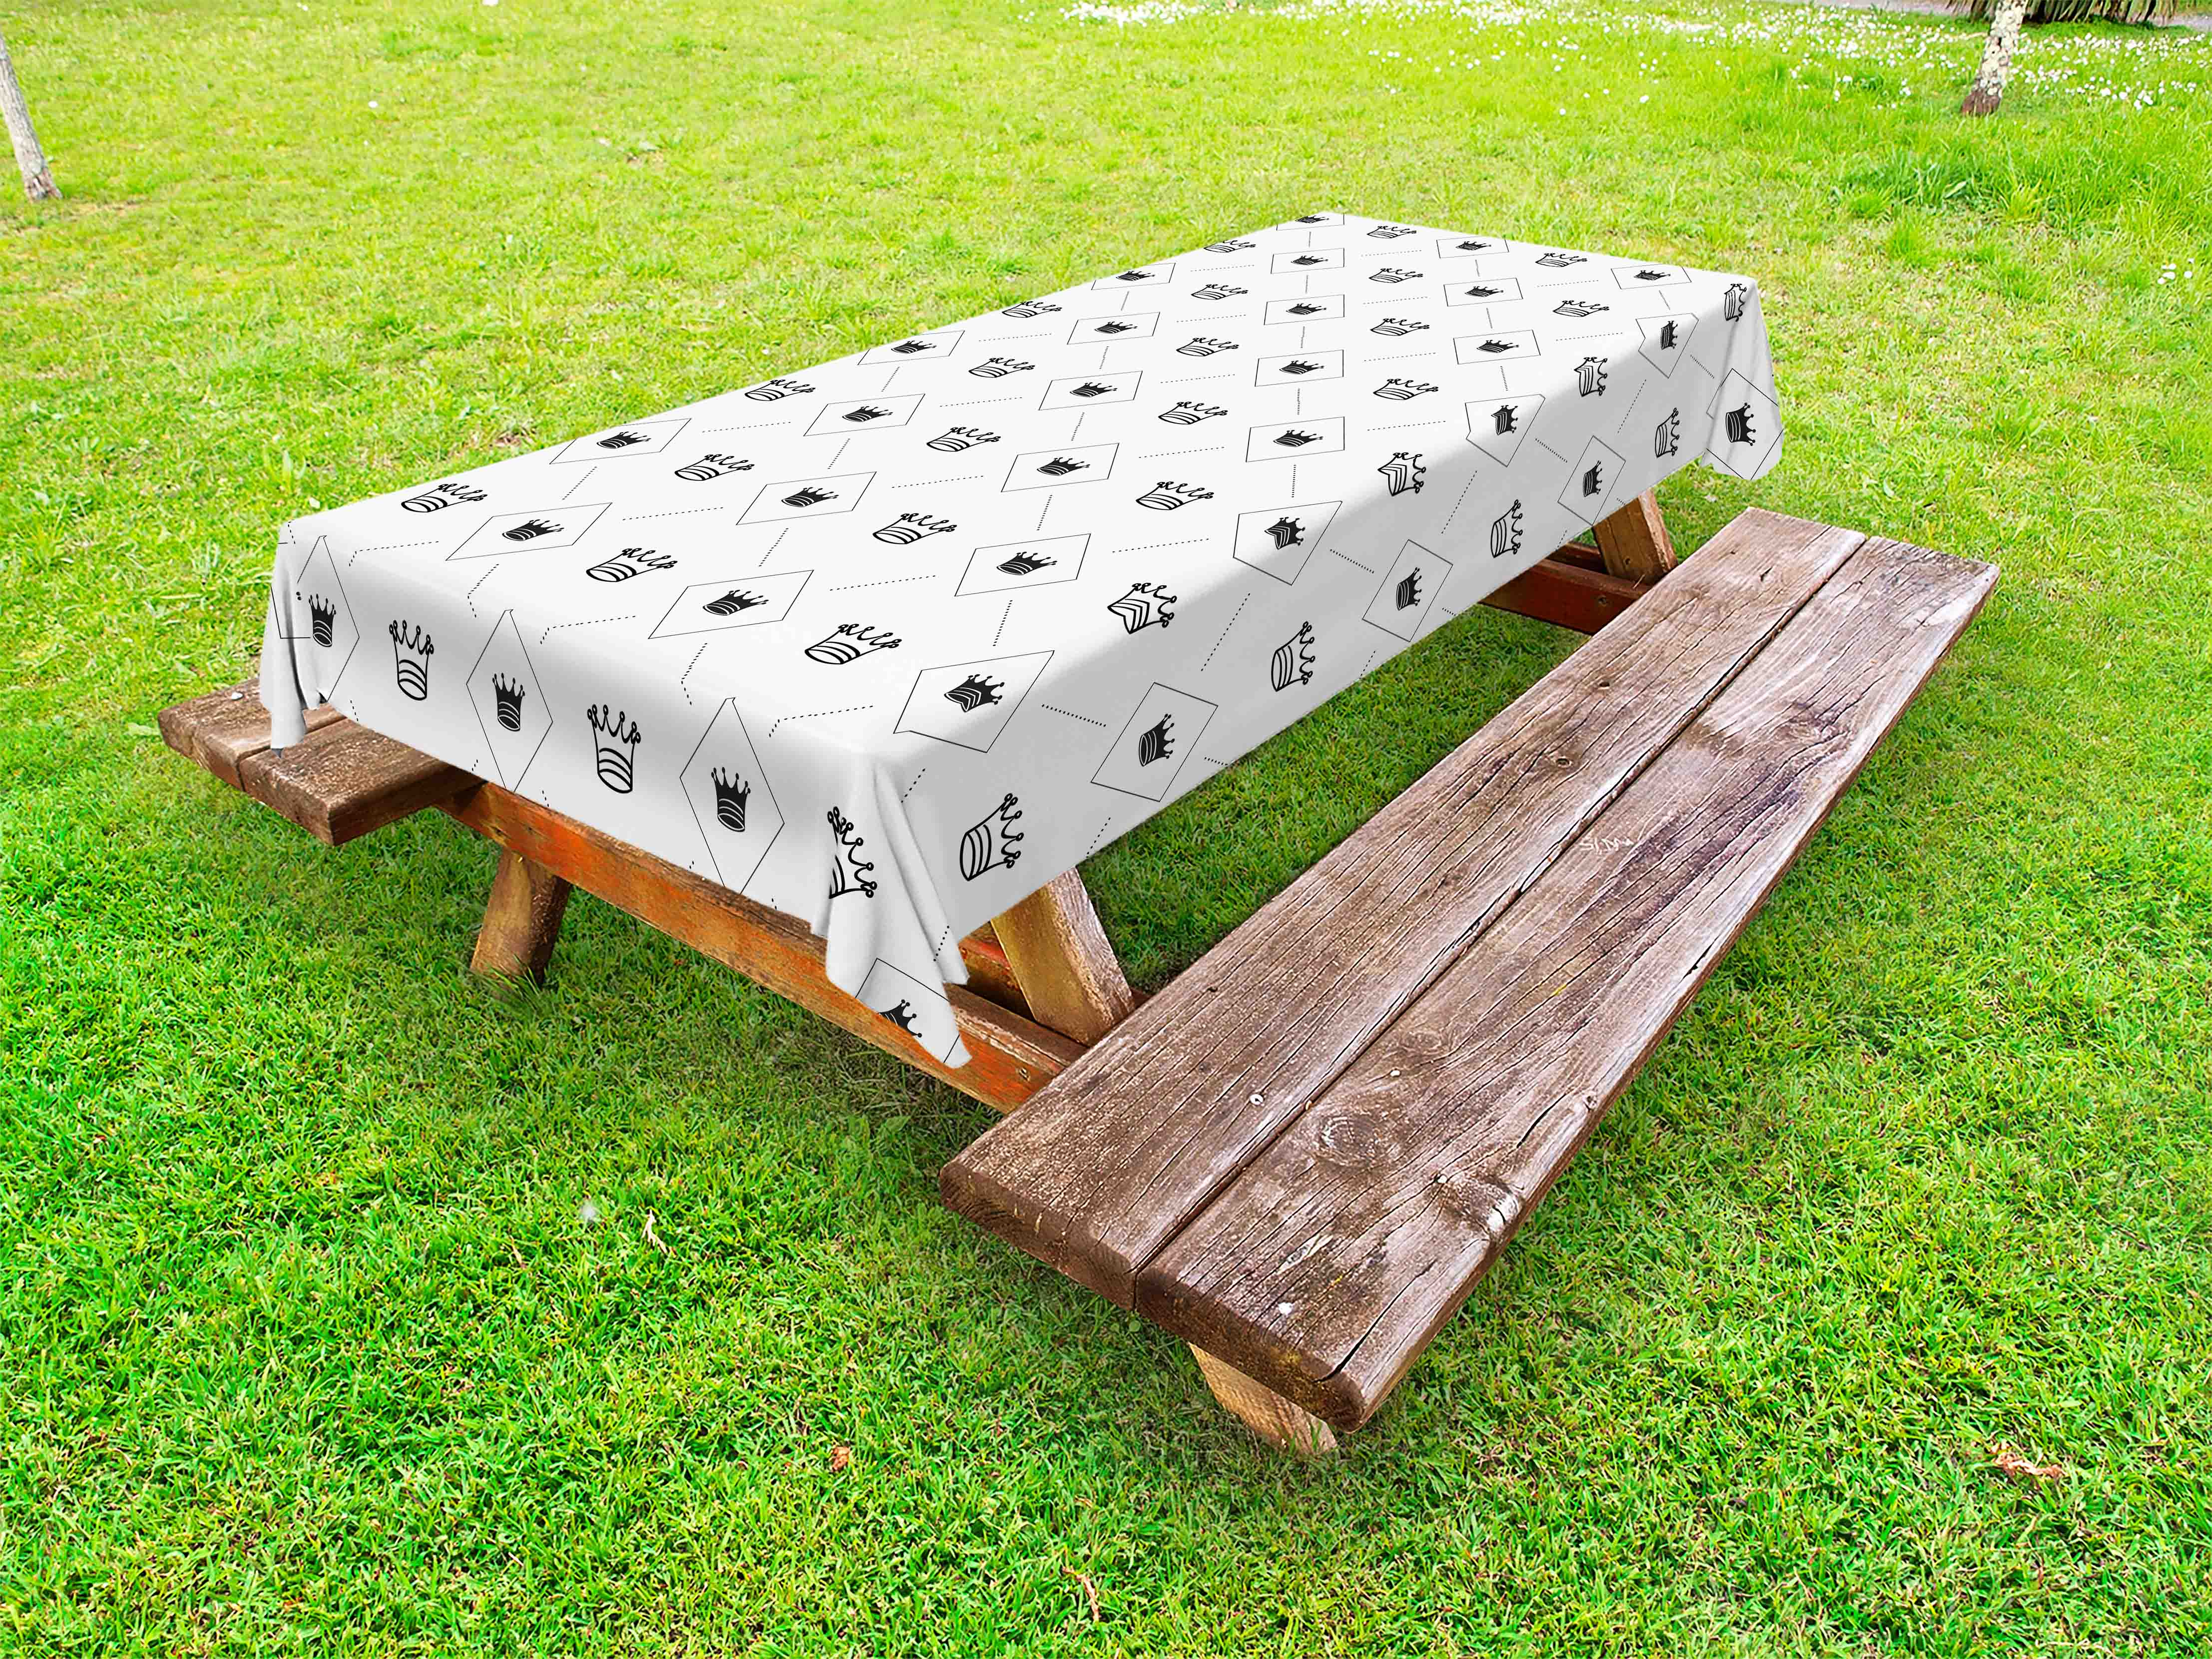 Abstract outdoor tablecloth minimalist stylized modern motif cute crowns and dots artistic graphic design decorative washable fabric picnic table cloth